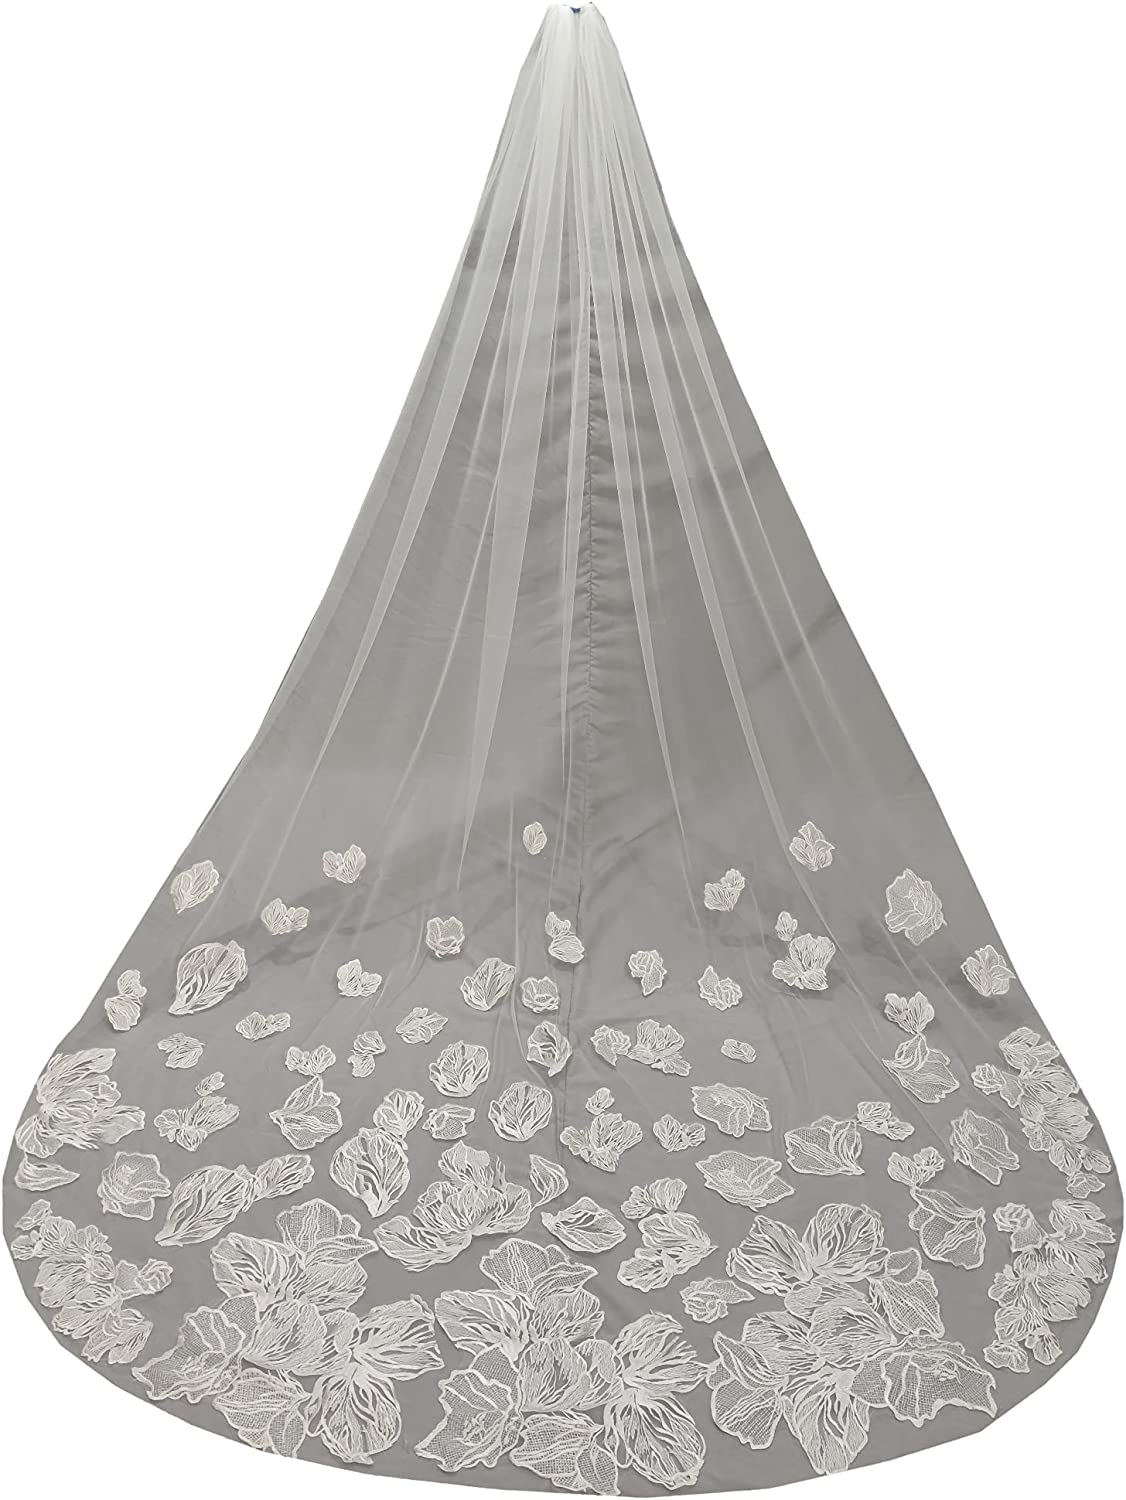 Weddings Veils 1 Tier Long Cathedral Bride lace Sequins Applique with Comb